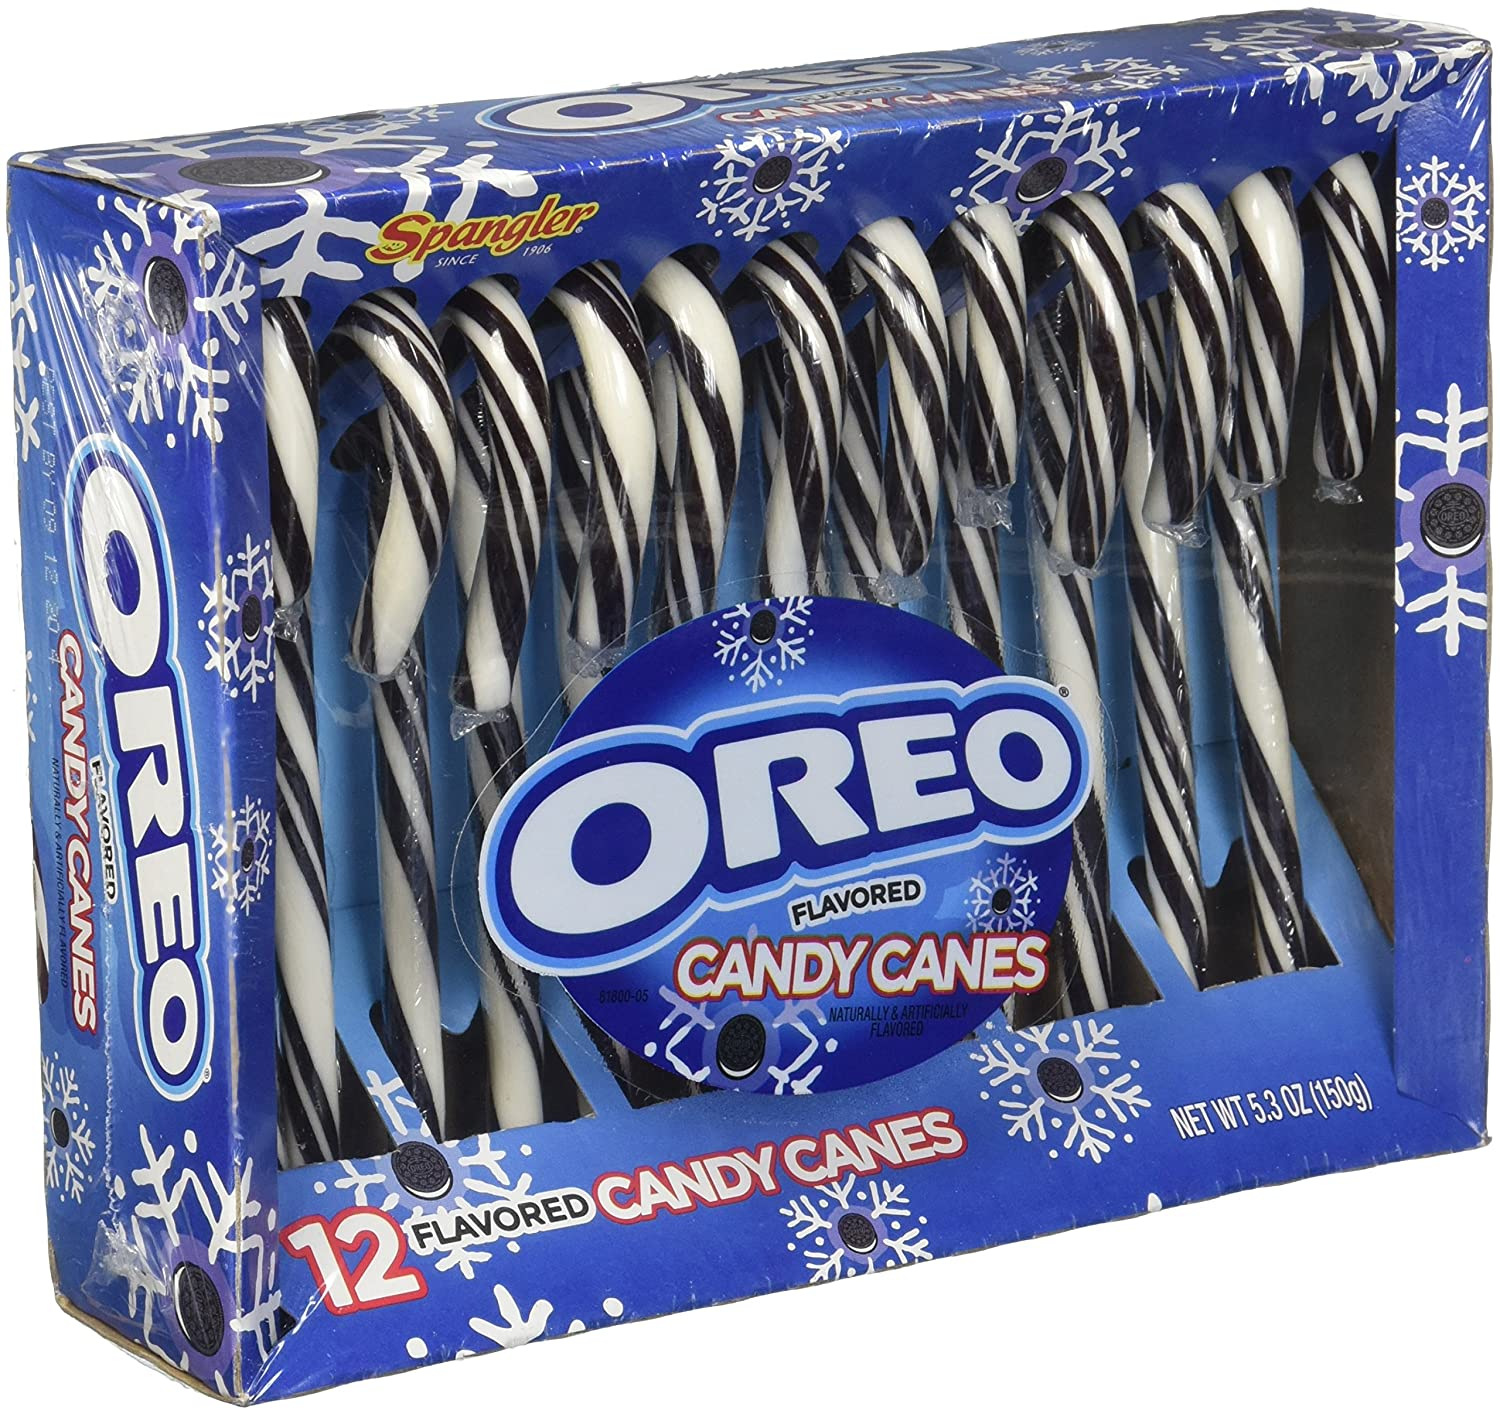 Spangler Oreo Flavored 12 Candy Canes Cookies And Cream Single Pack